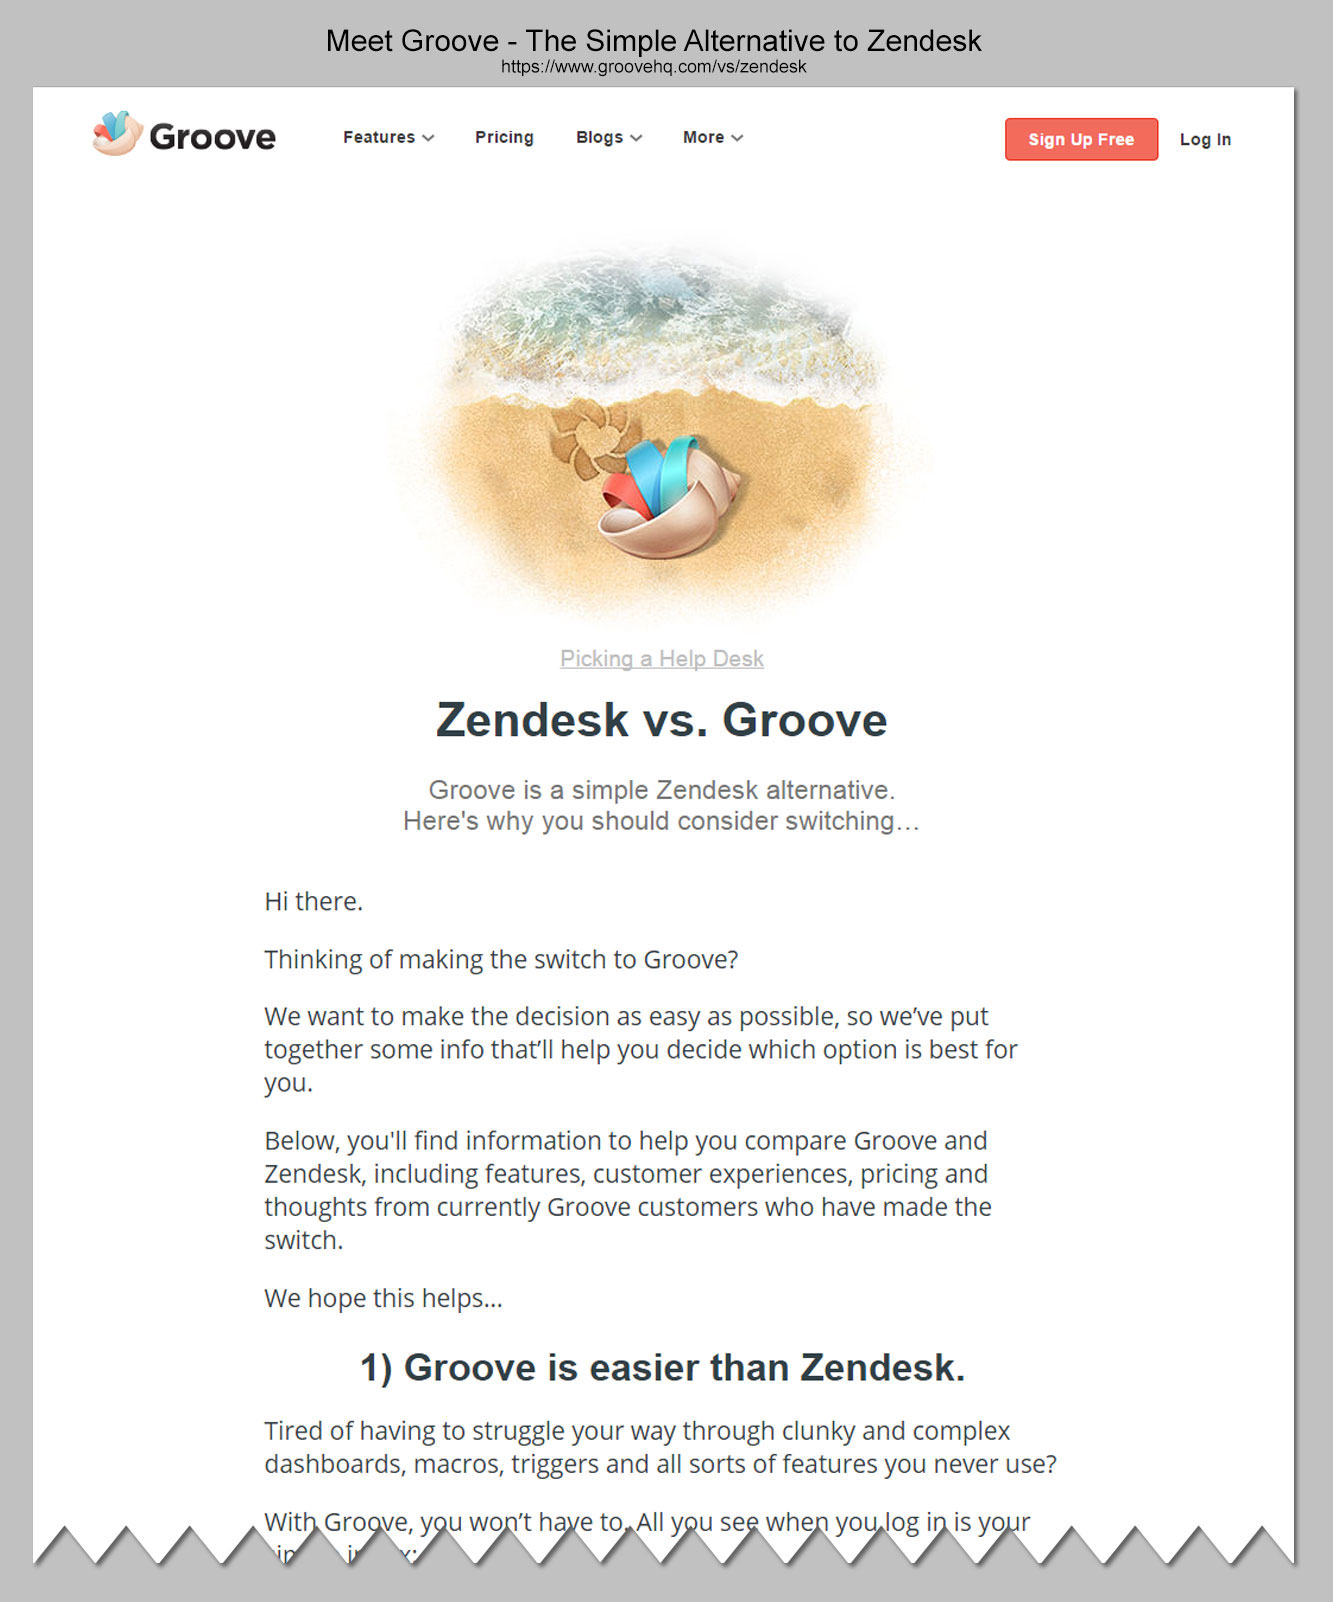 groove-zendesk-alternative